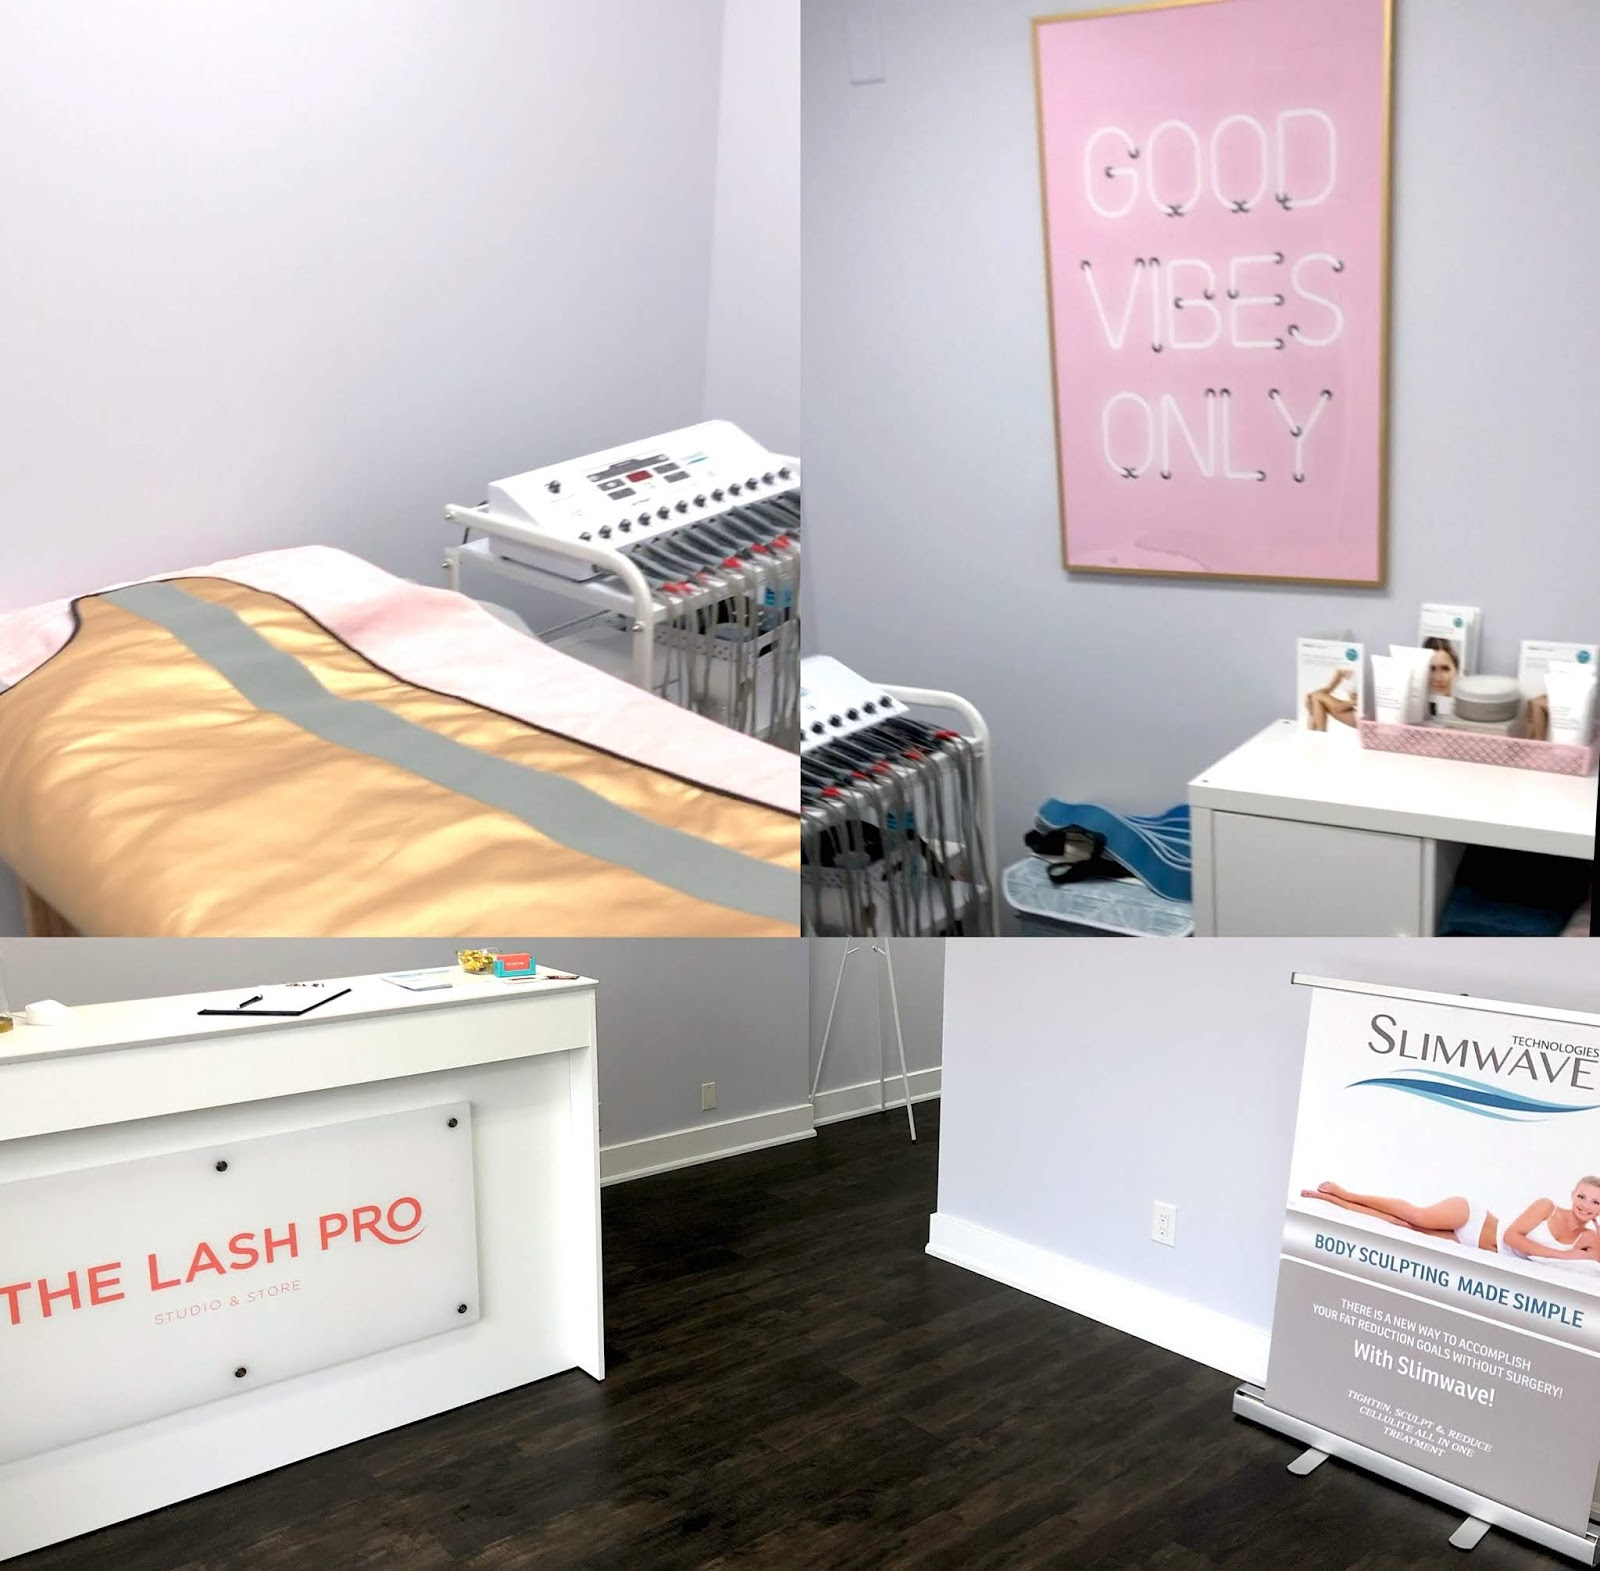 SlimWave at the Lash Pro Studio